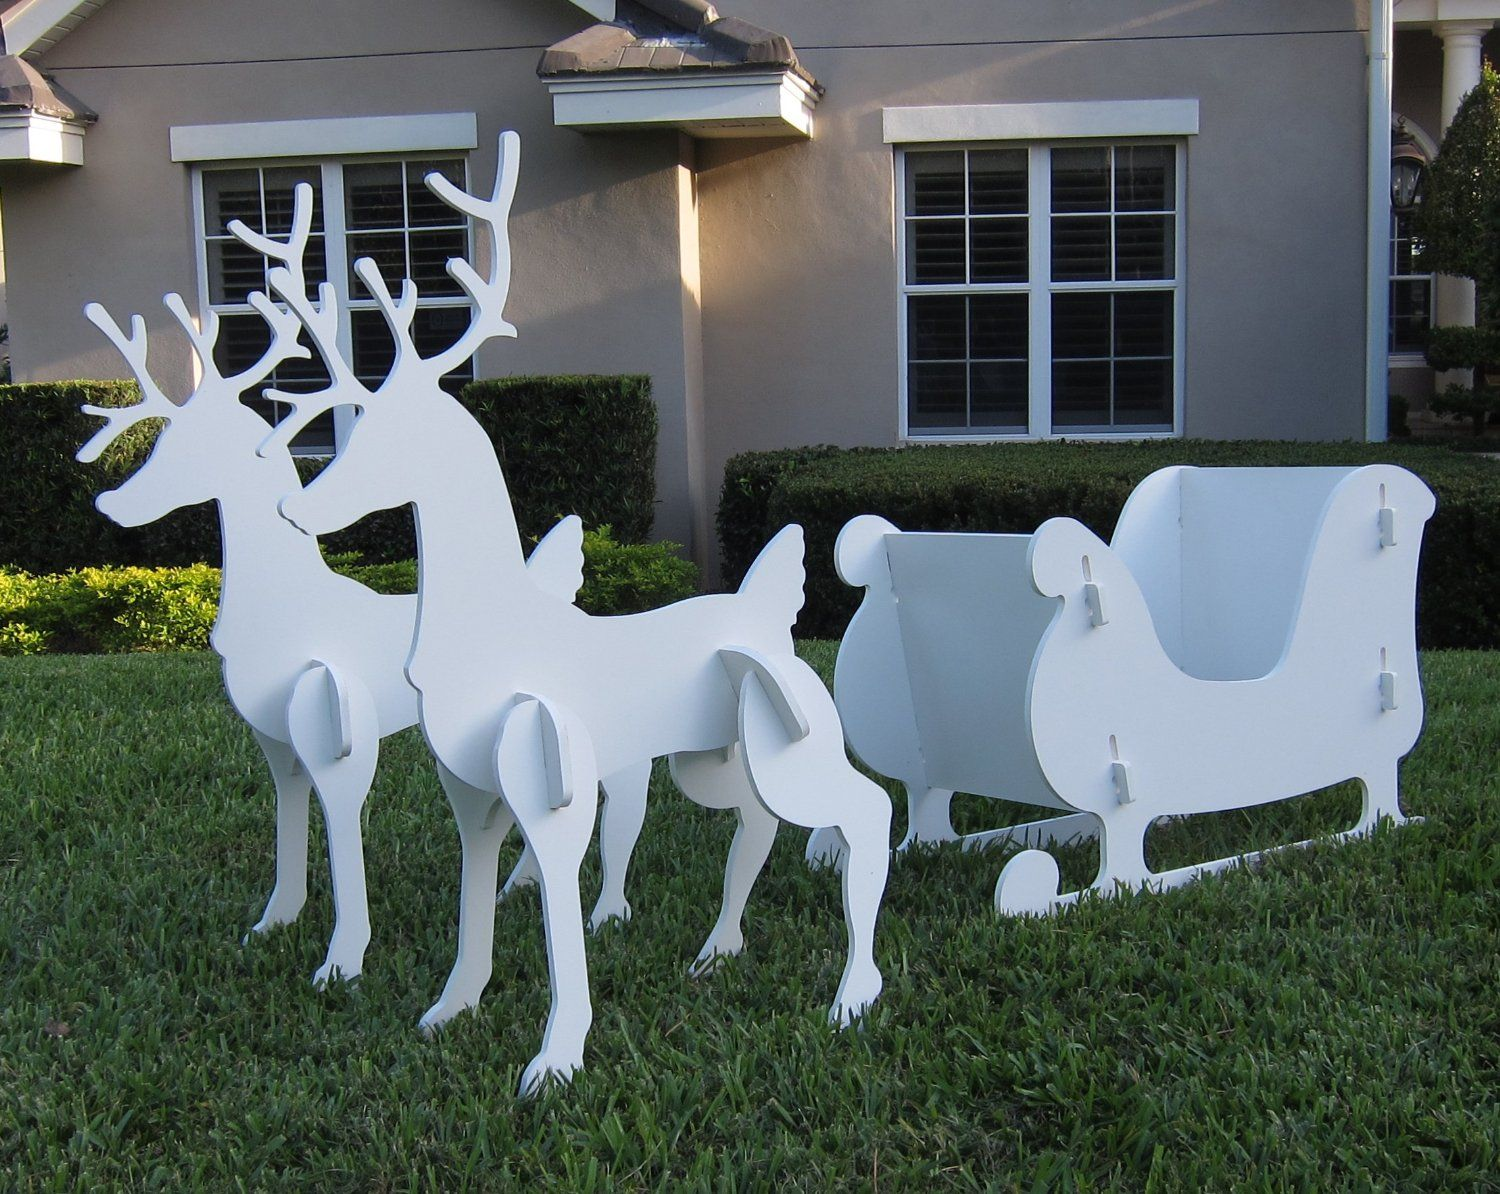 Outdoor christmas decorations 2014 - Large Outdoor Christmas Decorations Large Outdoor Christmas Decorations